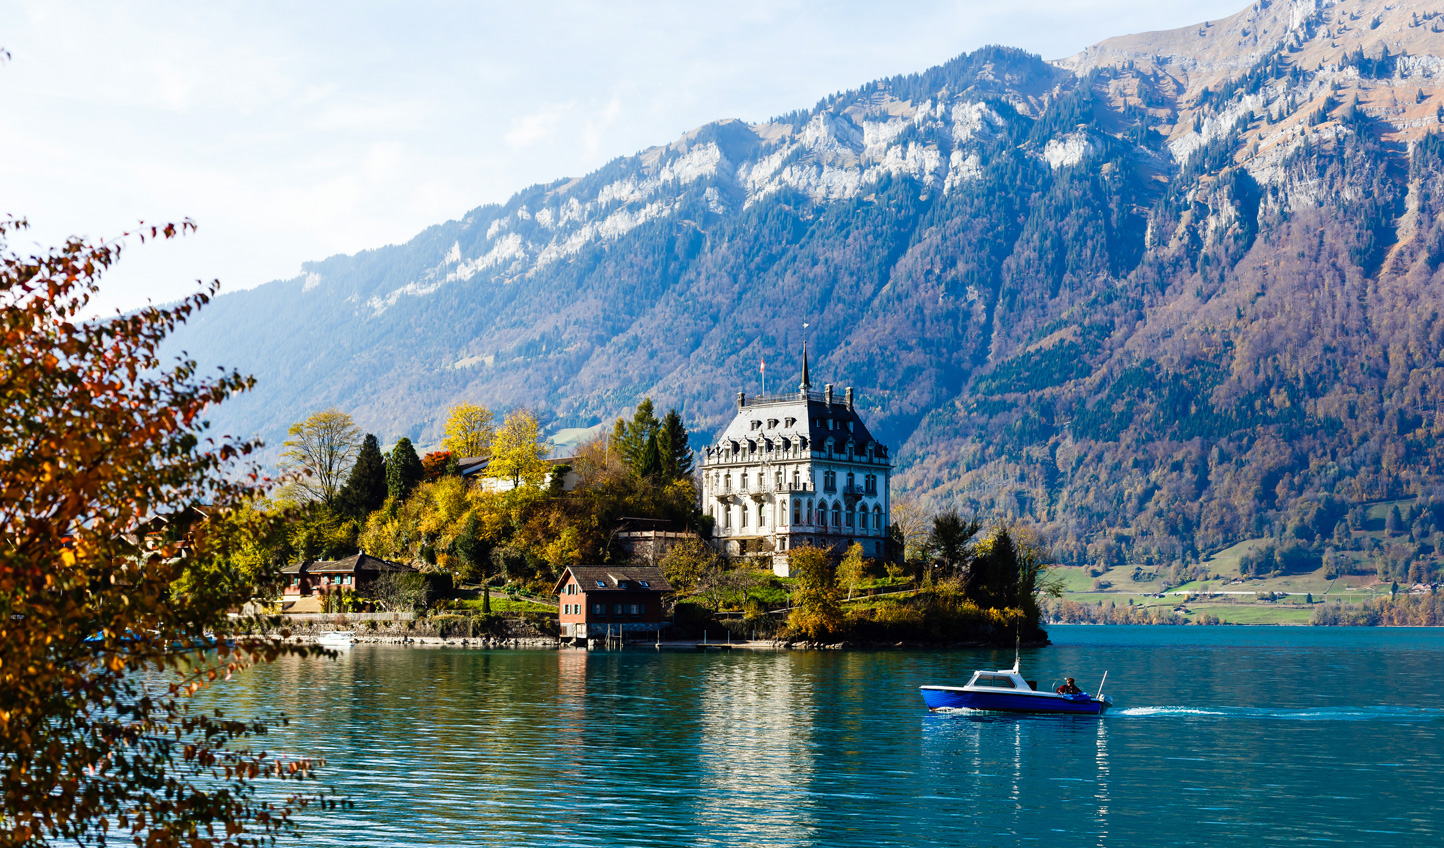 Surrounded by beautiful lakes on either side, spend a couple of days in Interlaken